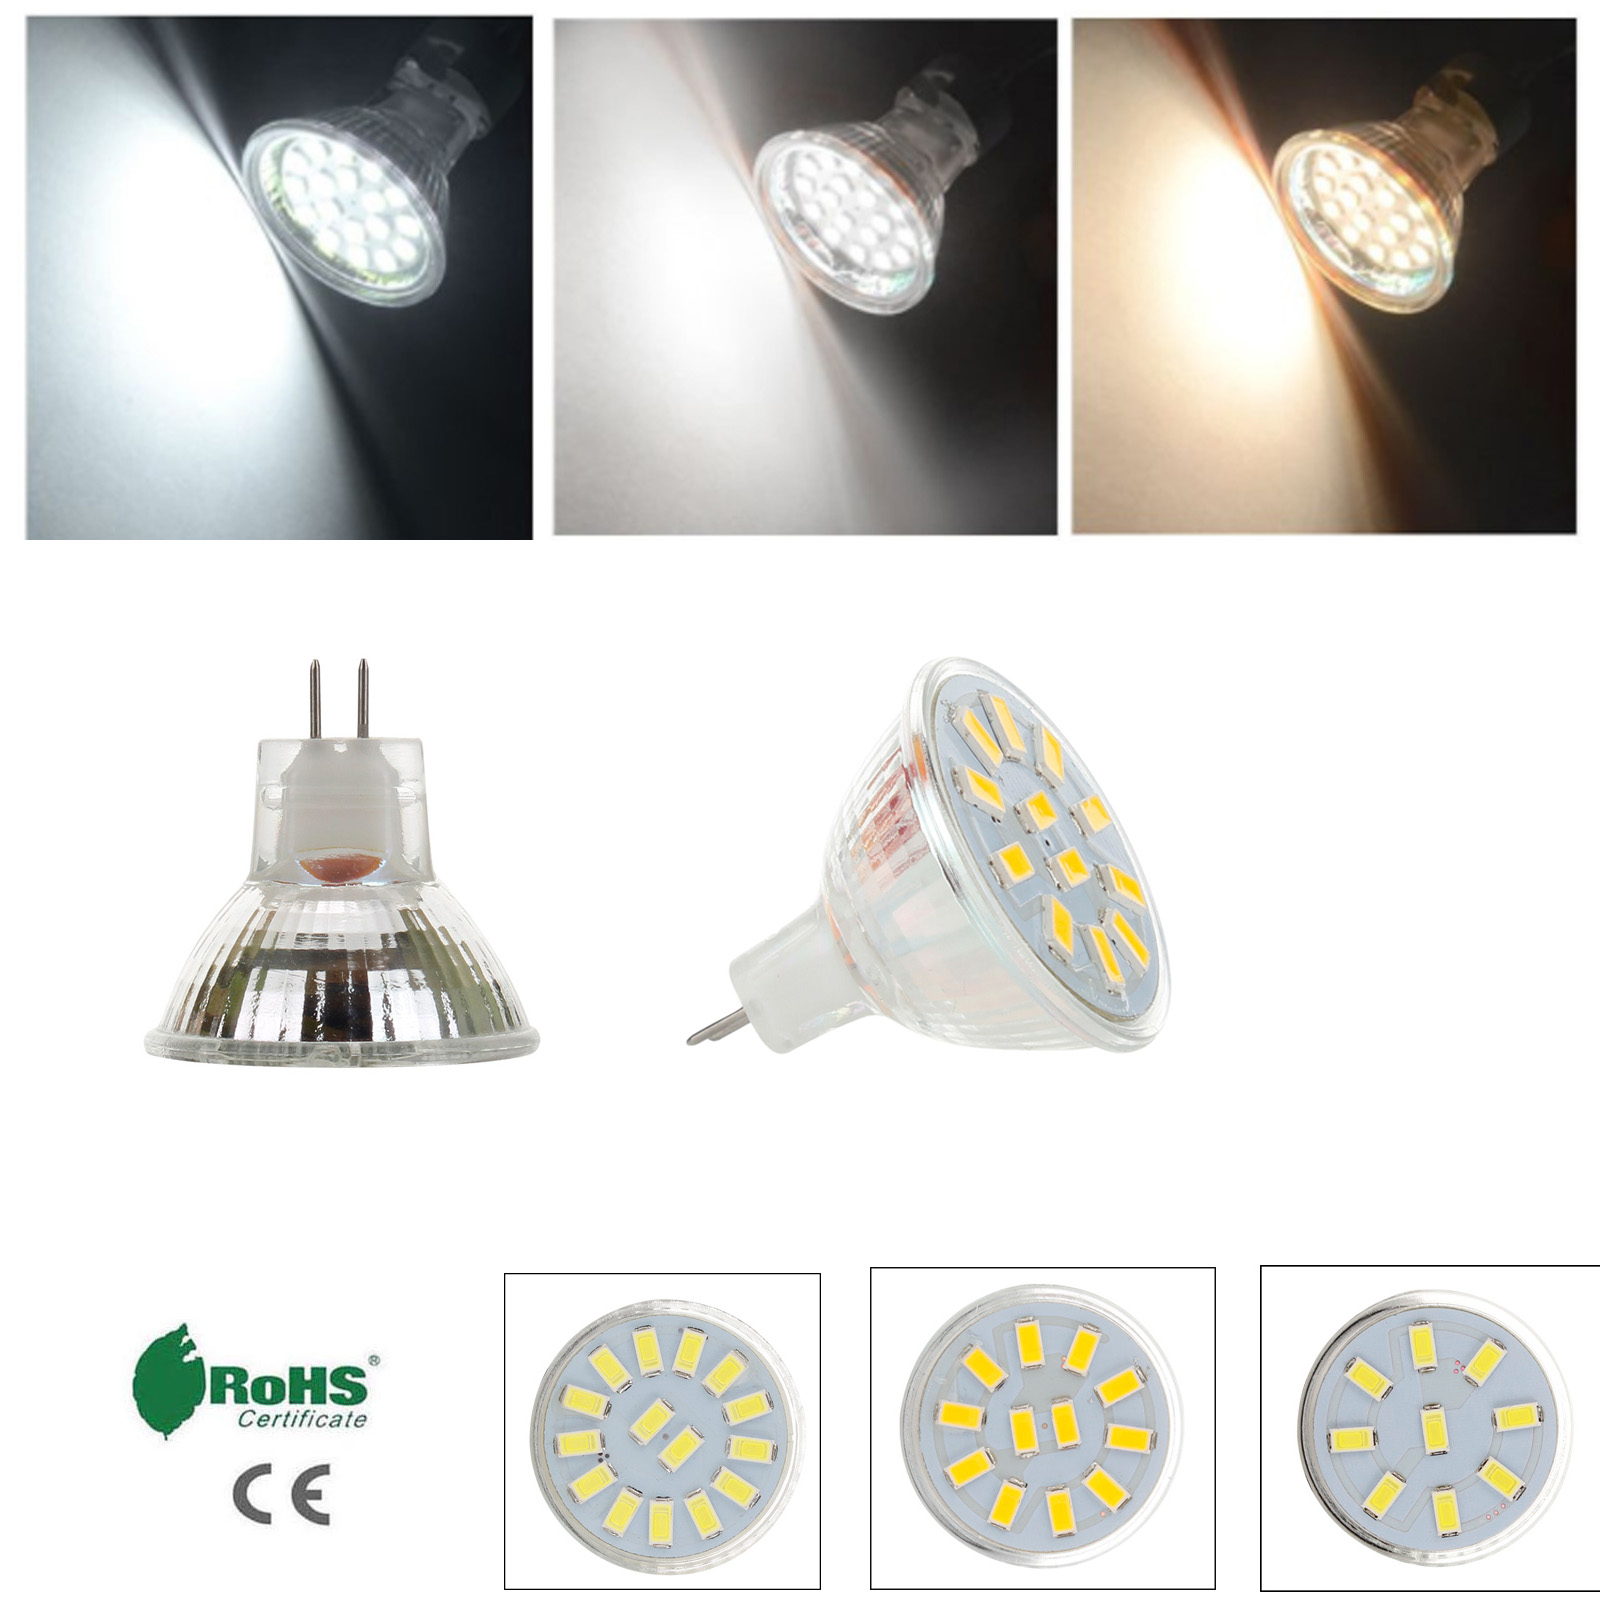 LED Spotlight Bulbs MR11 12V-24V 5730 SMD 2W 3W 4W LED Lamp Replace 15W 20W Halogen Lamps Energy Saving For Home Office Decor